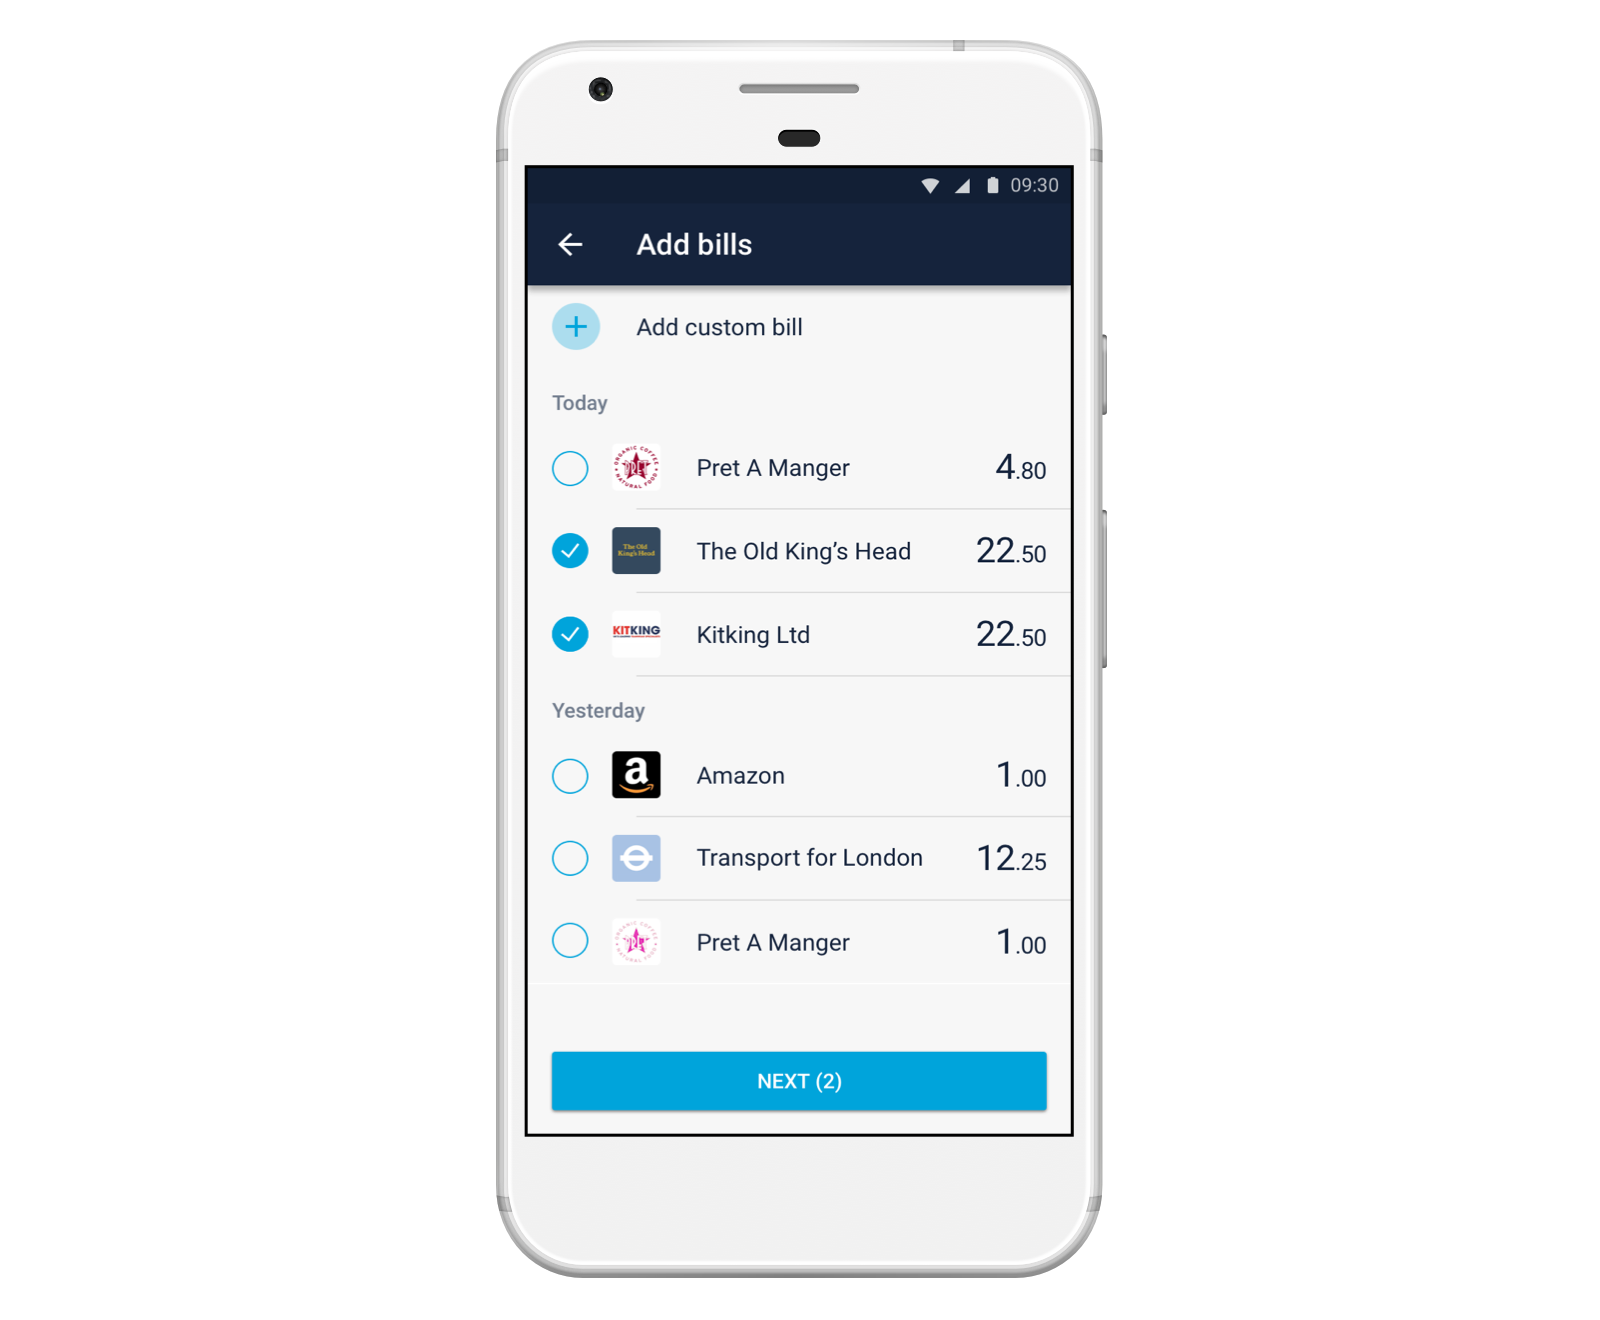 Image of a smartphone showing a Shared Tab on the Monzo app